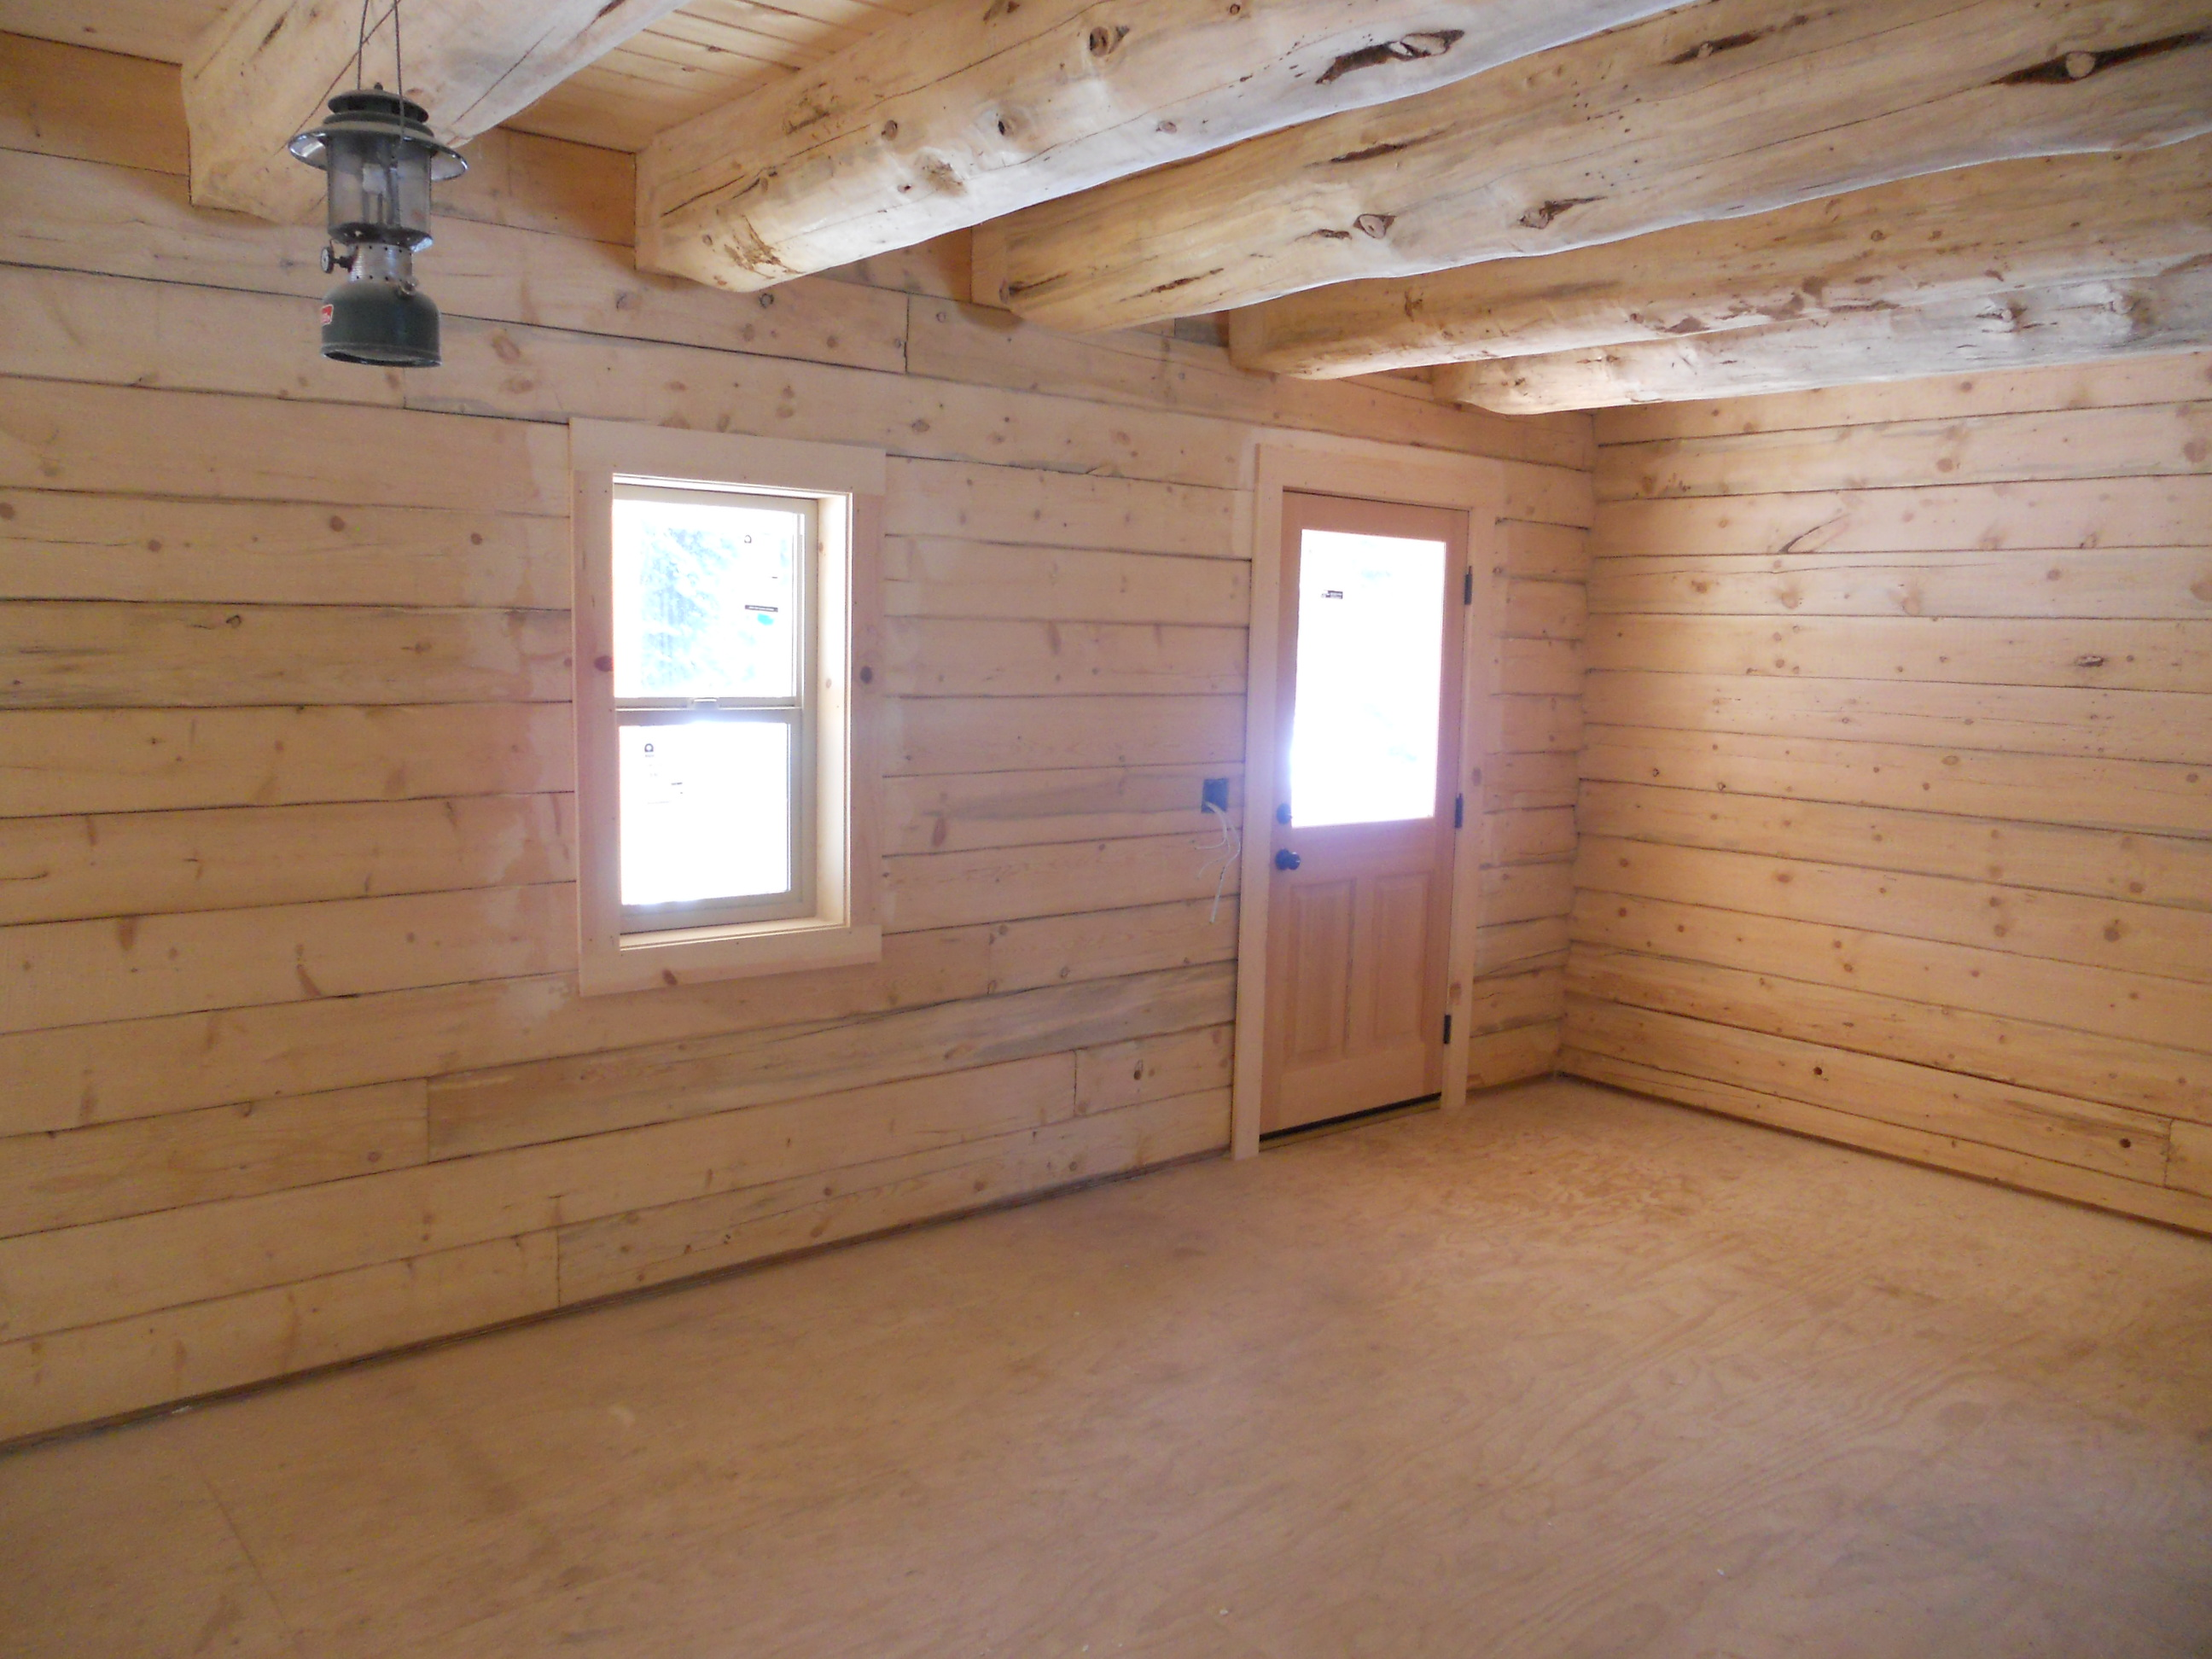 Wonderful image of log cabin kits Archives Preassembled Log Homes and Cabins by  with #734B30 color and 2592x1944 pixels